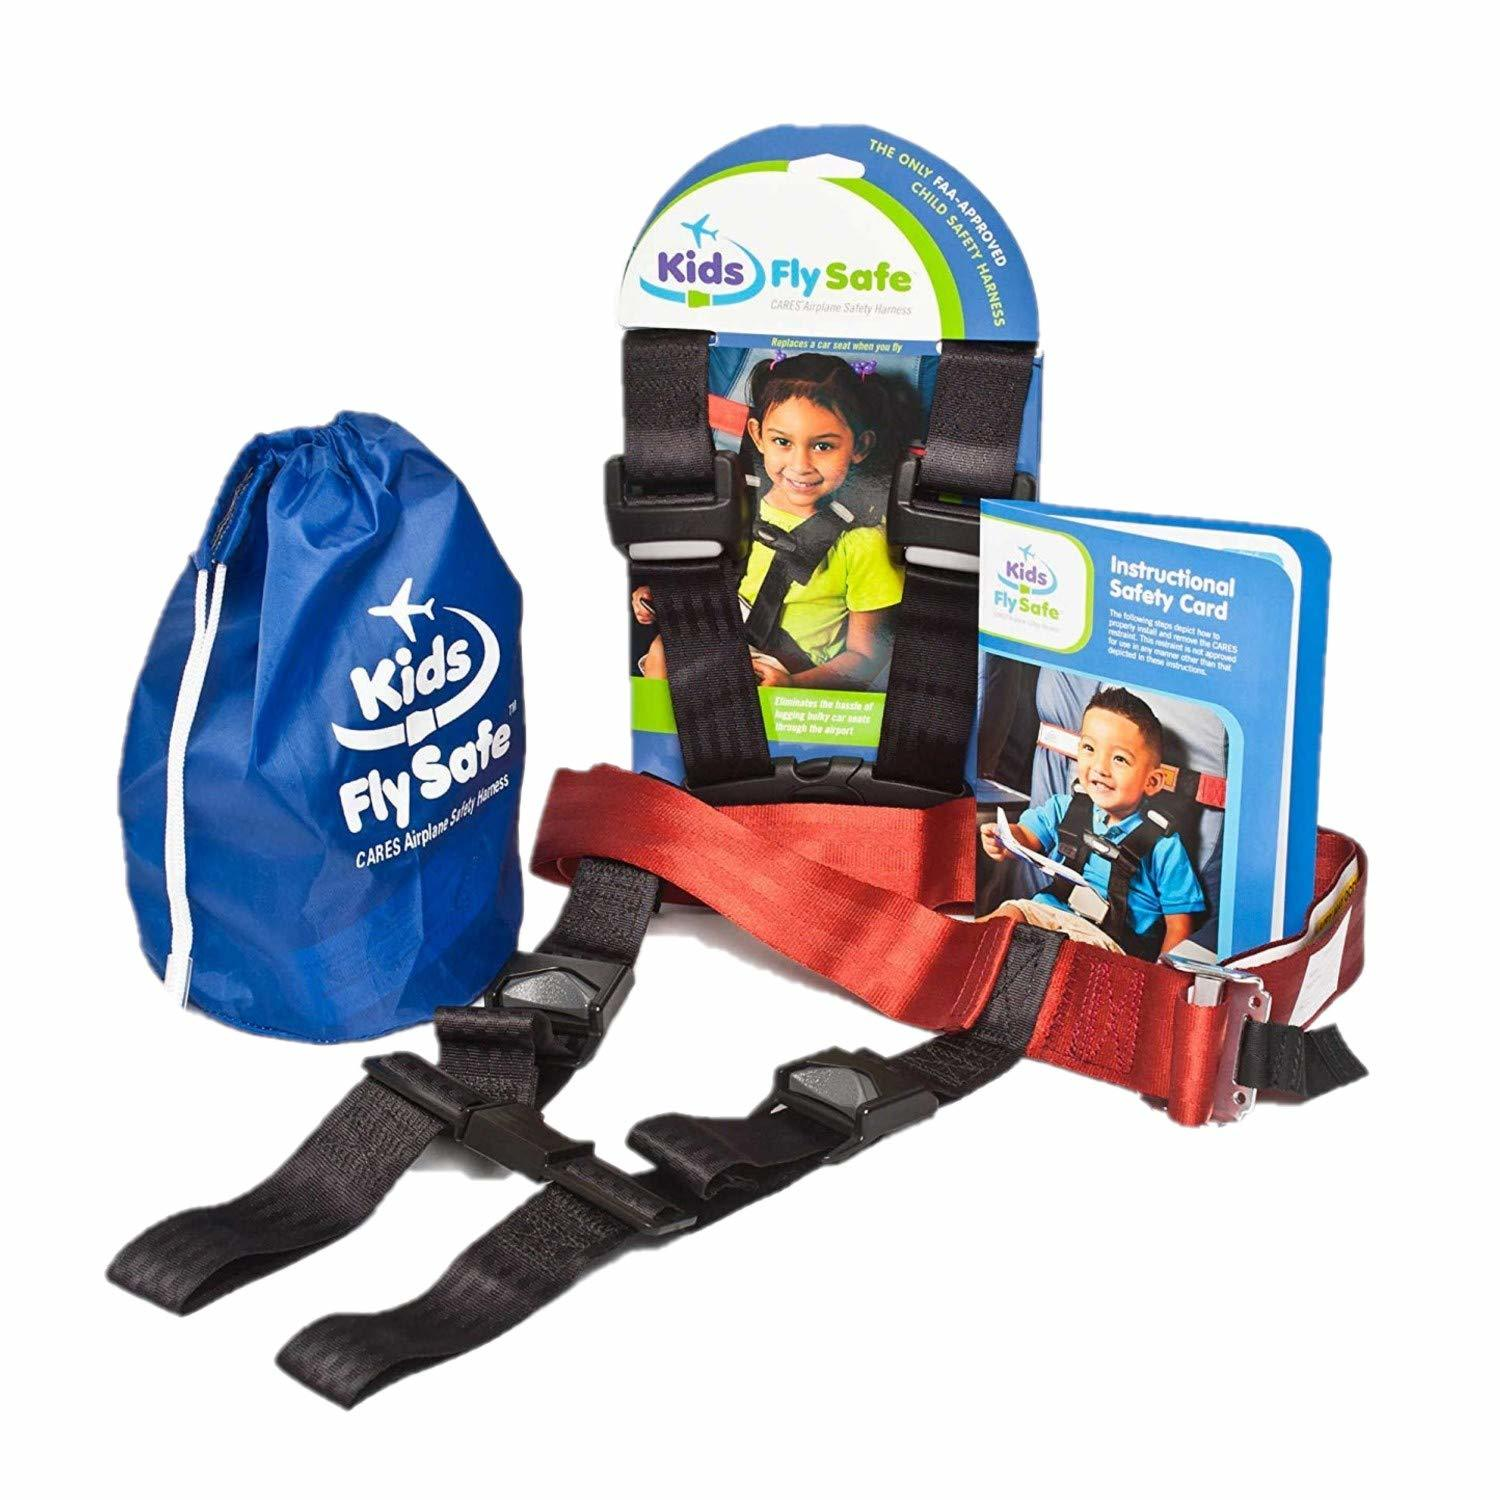 CARES Toddler Airplane Travel Harness (Photo credit: CARES by Kids Fly Safe)